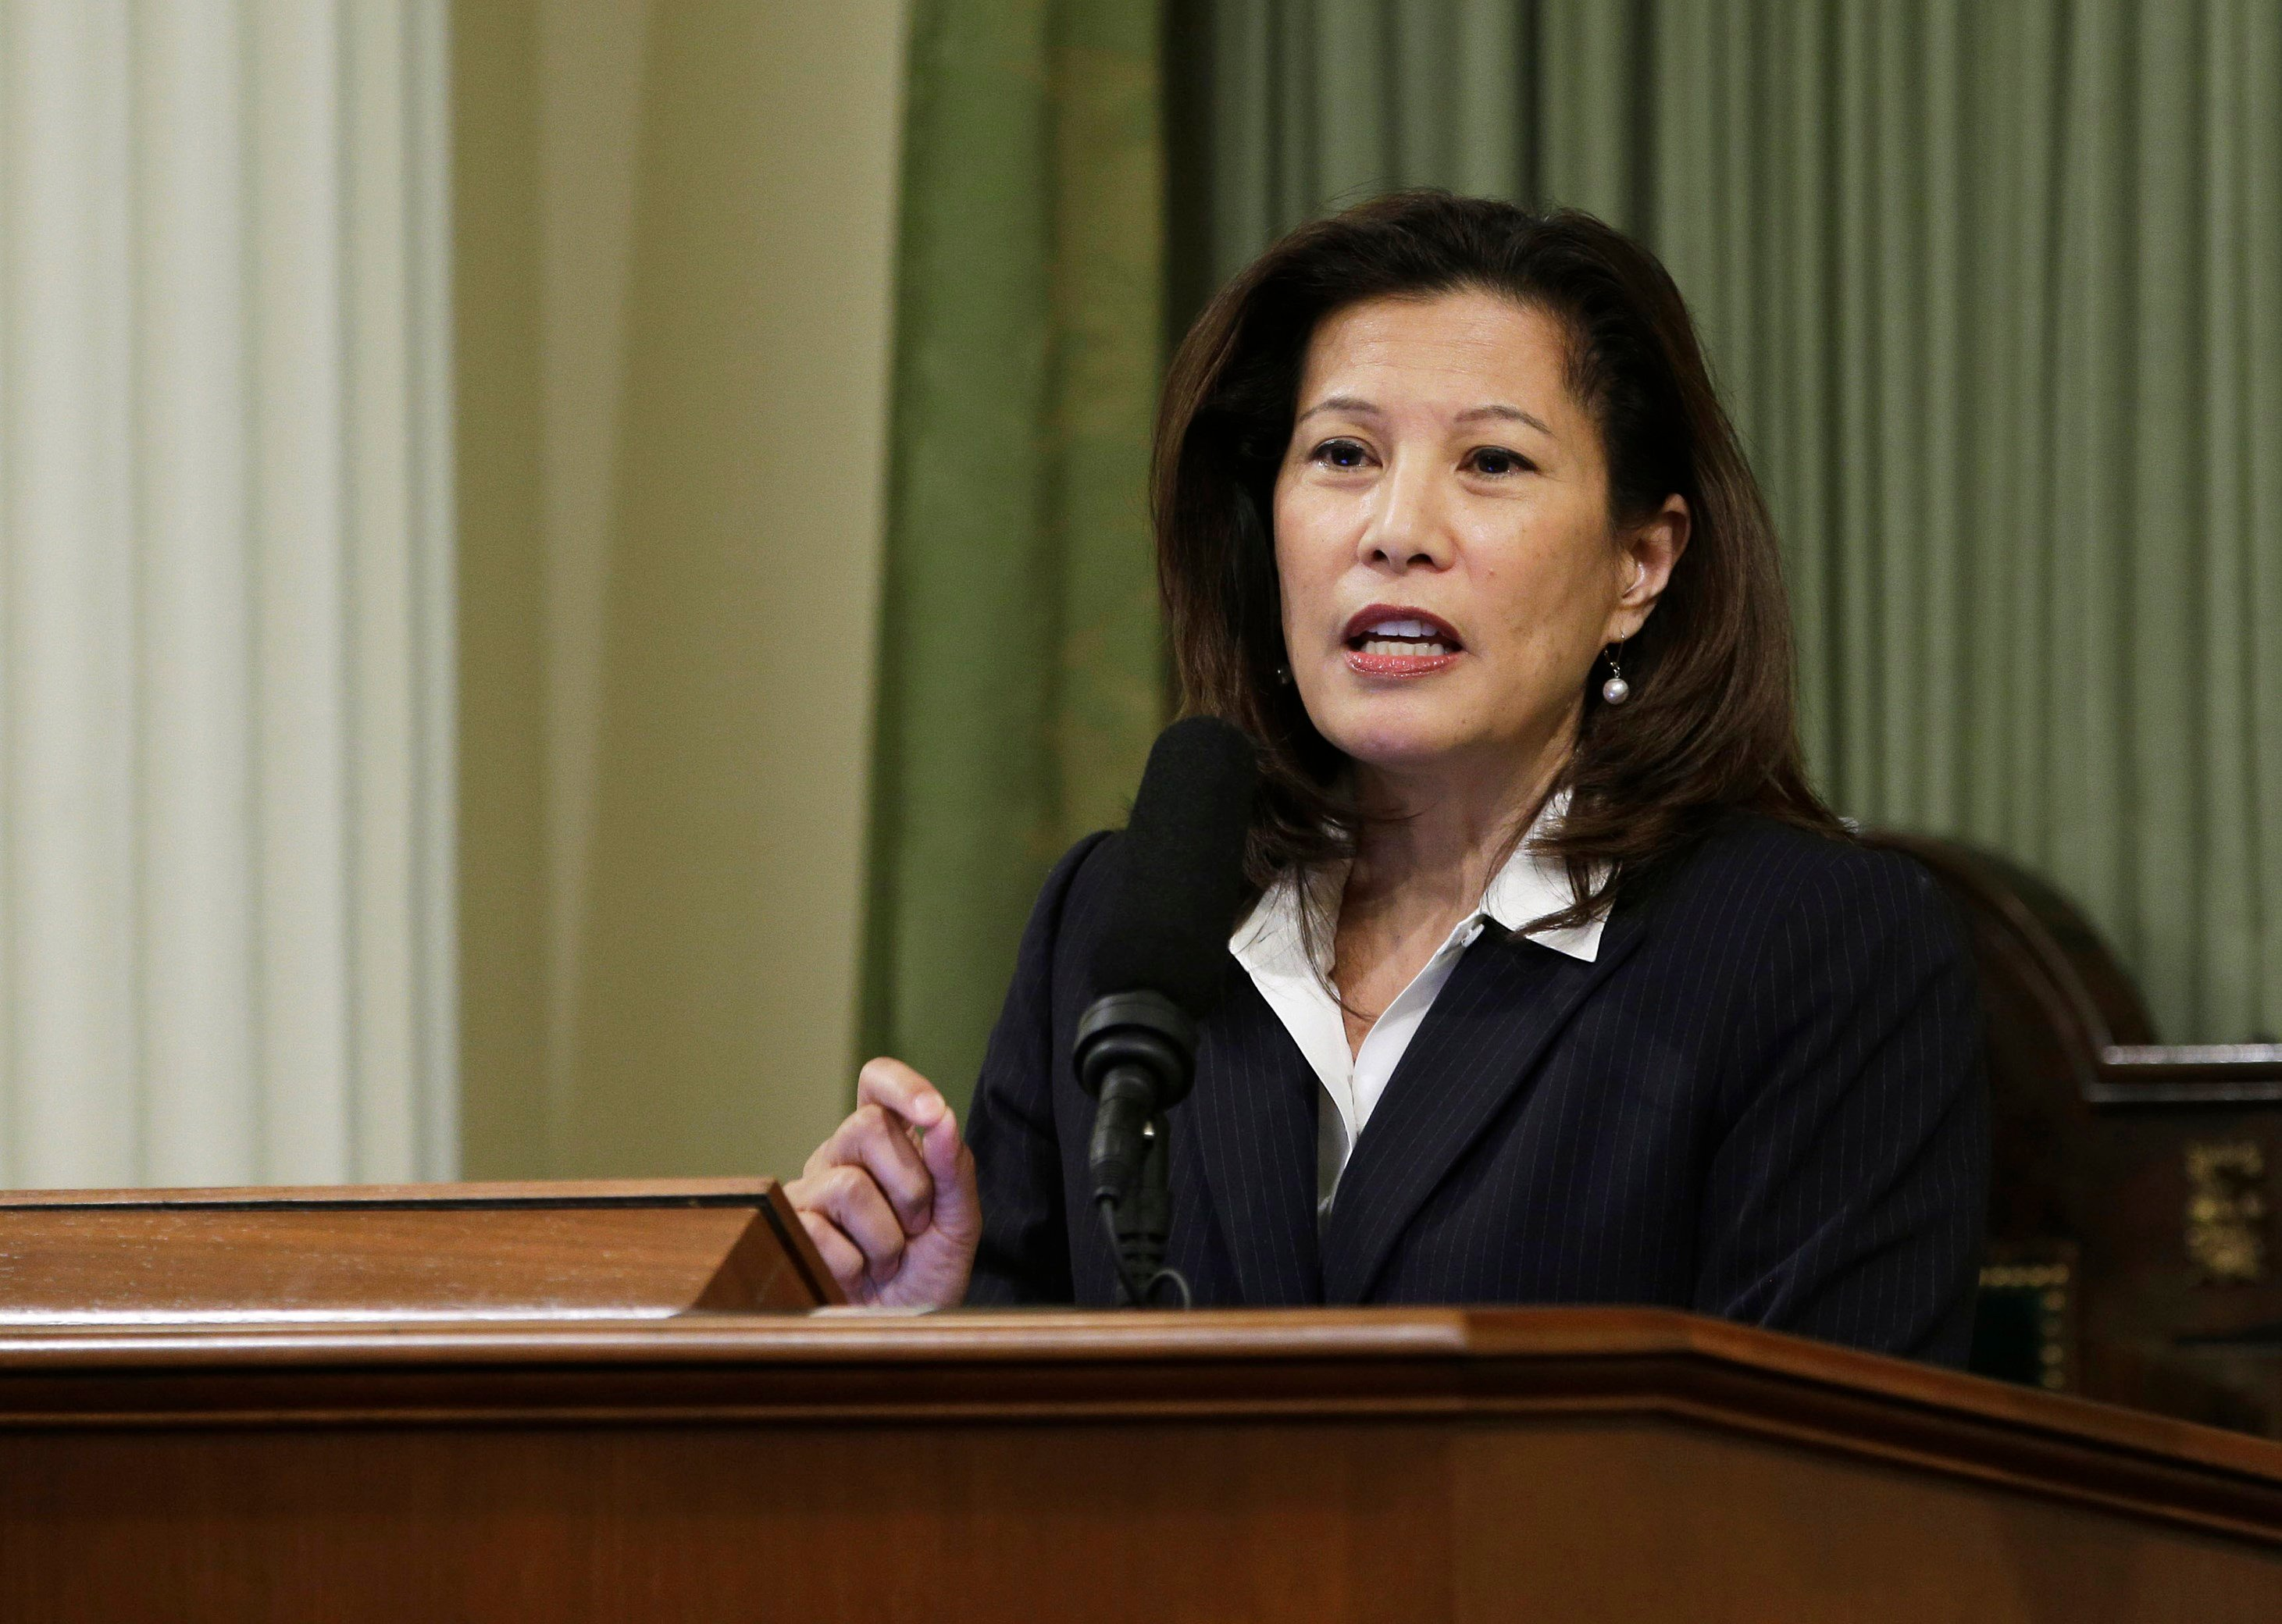 File - In this March 23, 2015, file photo, California Supreme Court Chief Justice Tani G. Cantil-Sakauye delivers her annual State of the Judiciary address before a joint session of the Legislature at the Capitol in Sacramento, Calif. (AP Photo/Rich Pedro